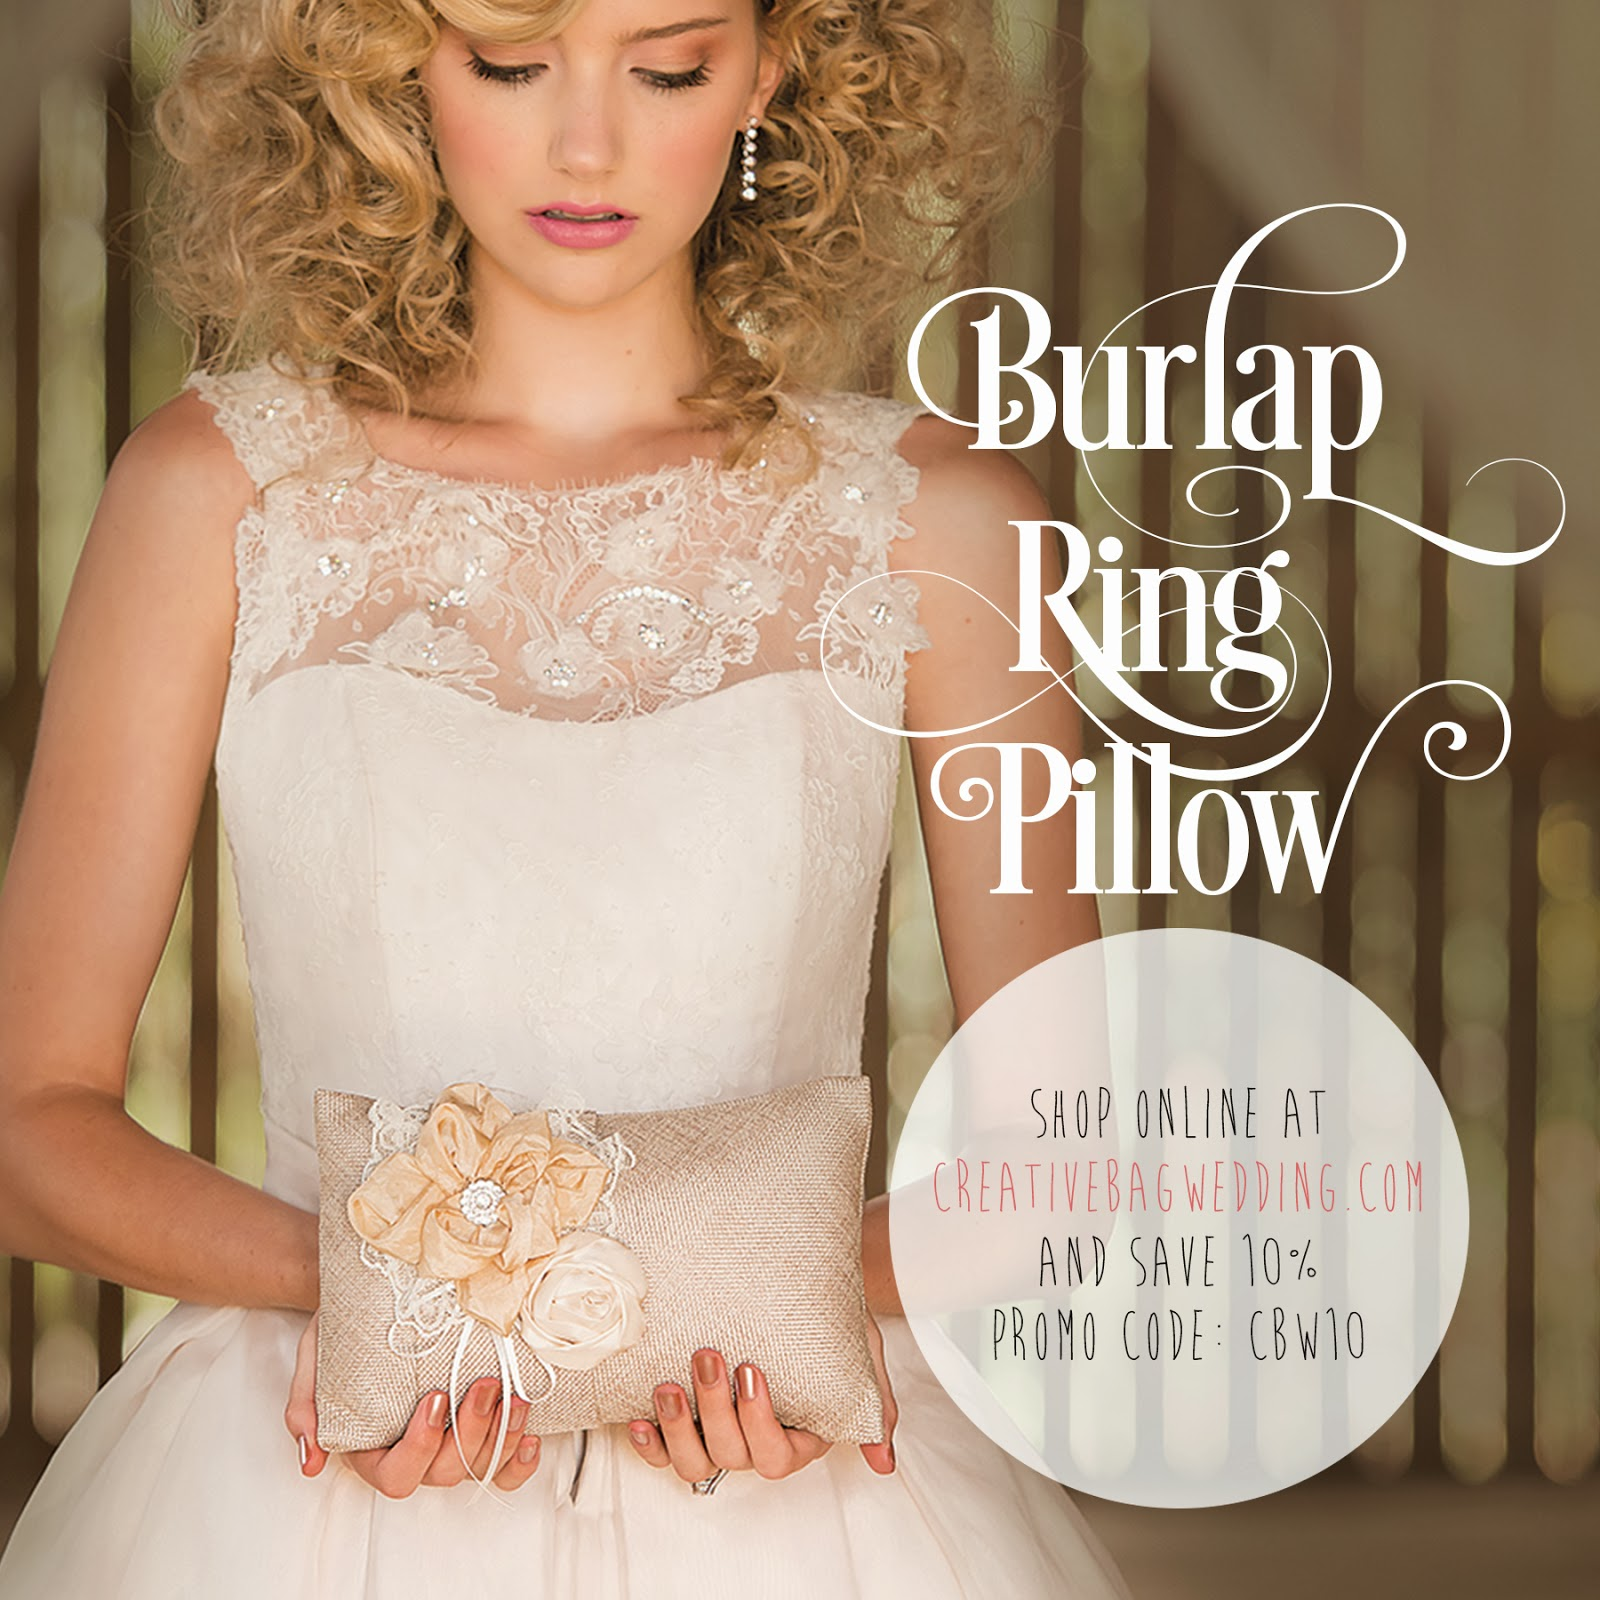 burlap chic ring pillow | Creative Bag Wedding | save 10% on line using promo code CBW10